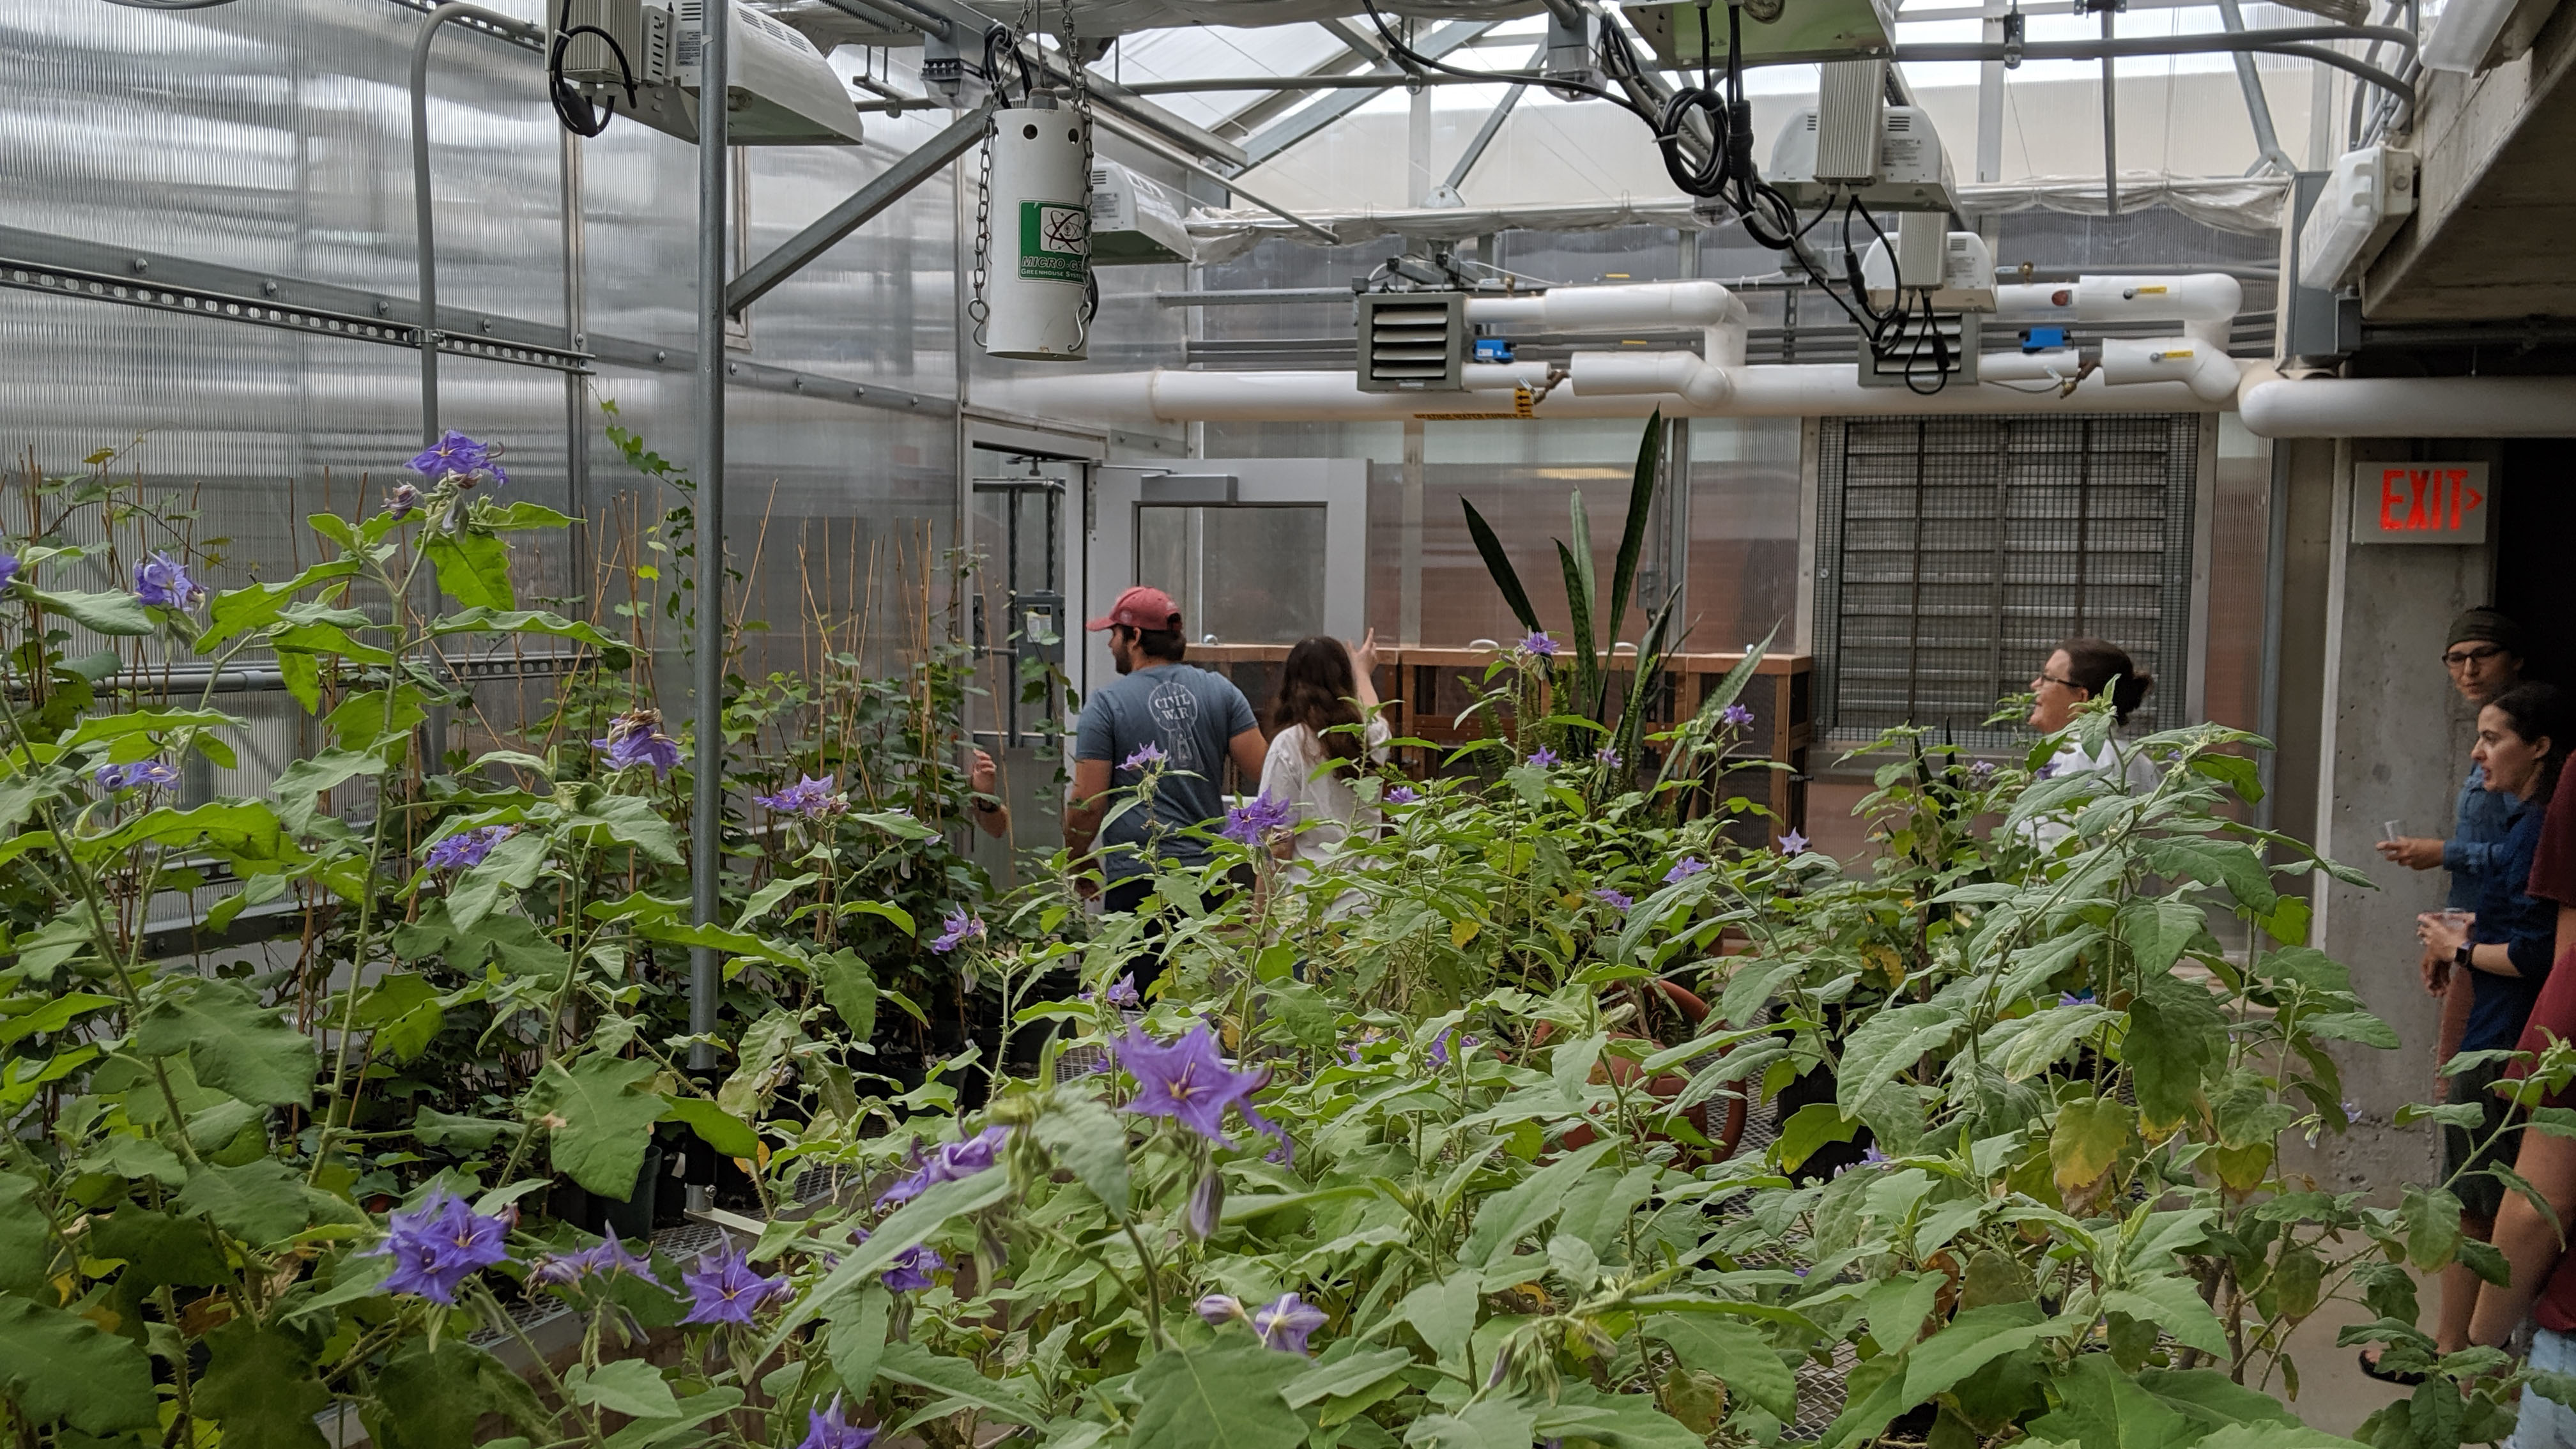 Students and plants in greenhouse